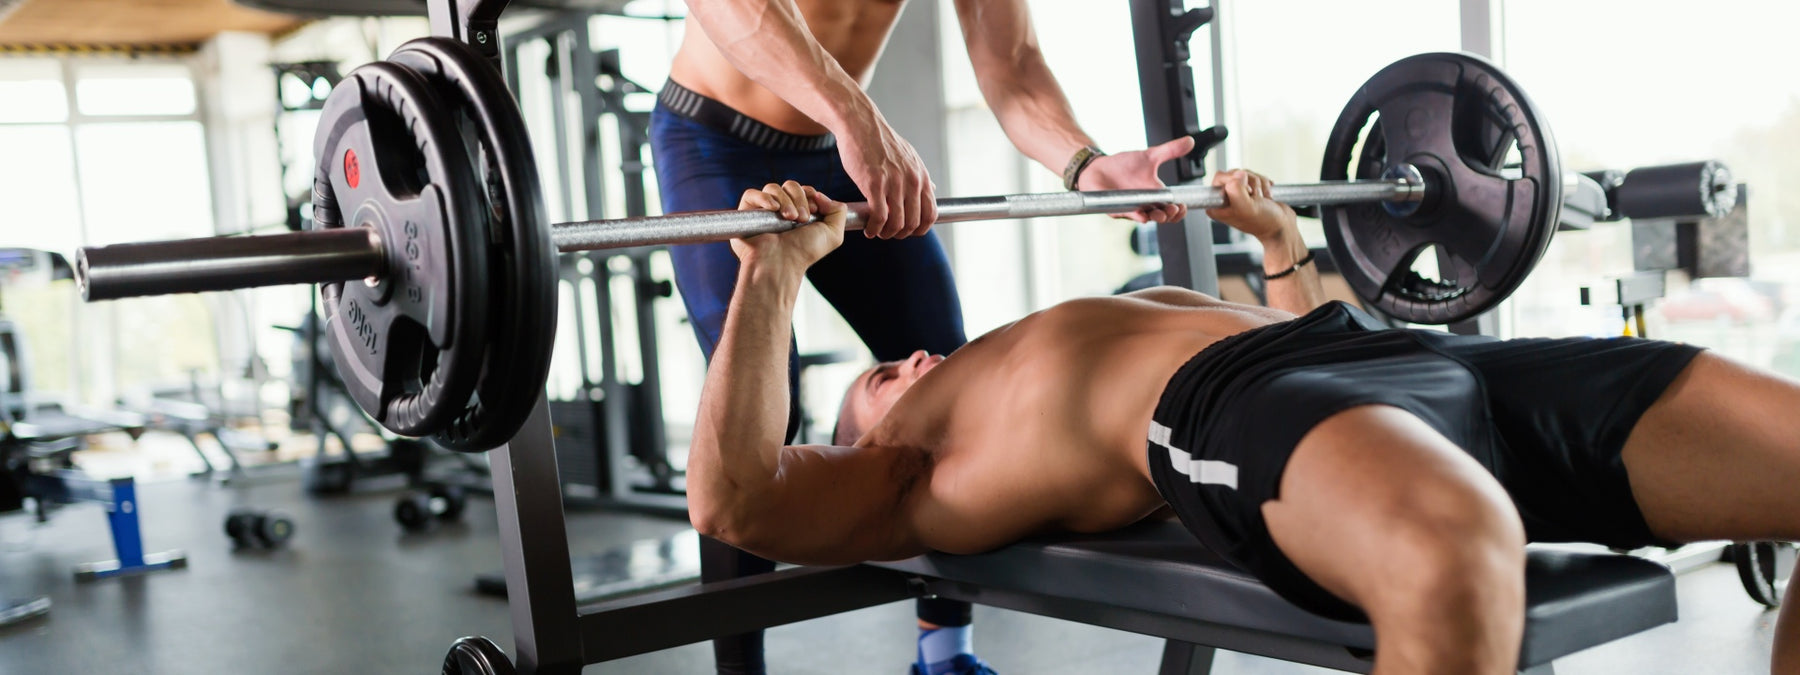 Bench Press One Rep Max and Percentage Calculator